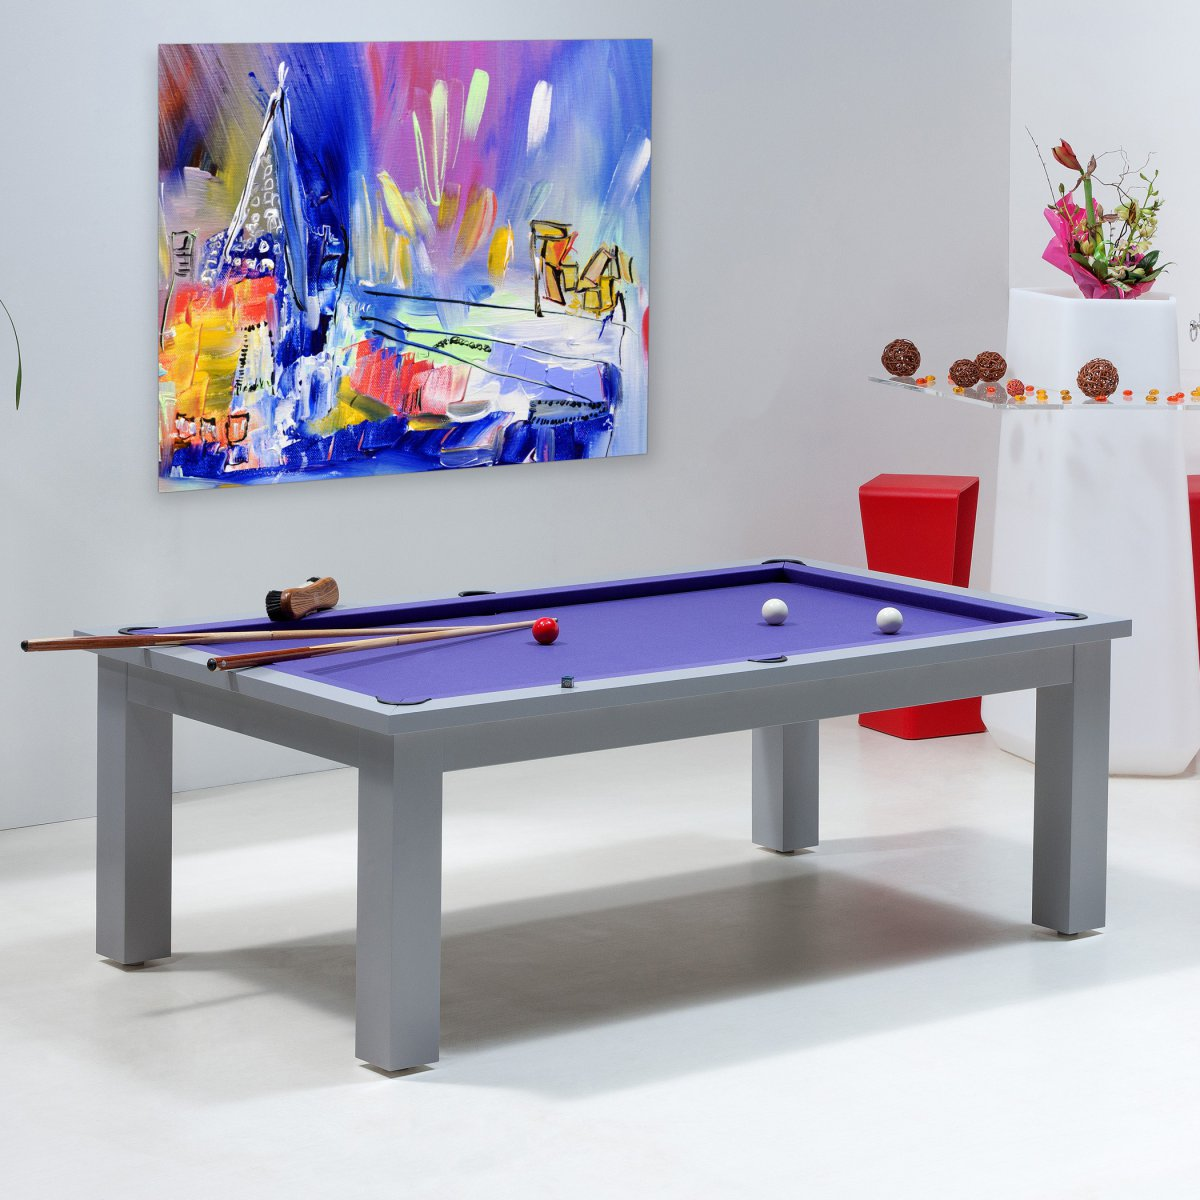 Table billard convertible billard transformable table boston - Billard convertible table ...